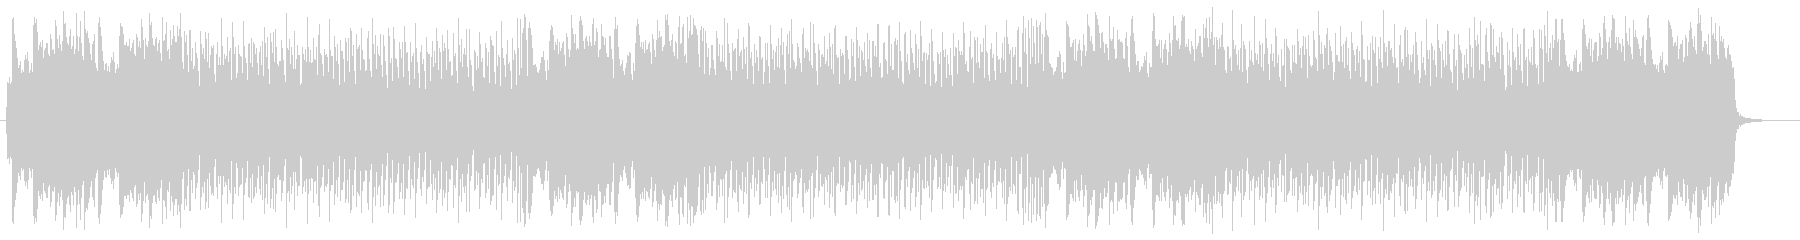 A song with dynamic tempo and song transition's unreproduced waveform